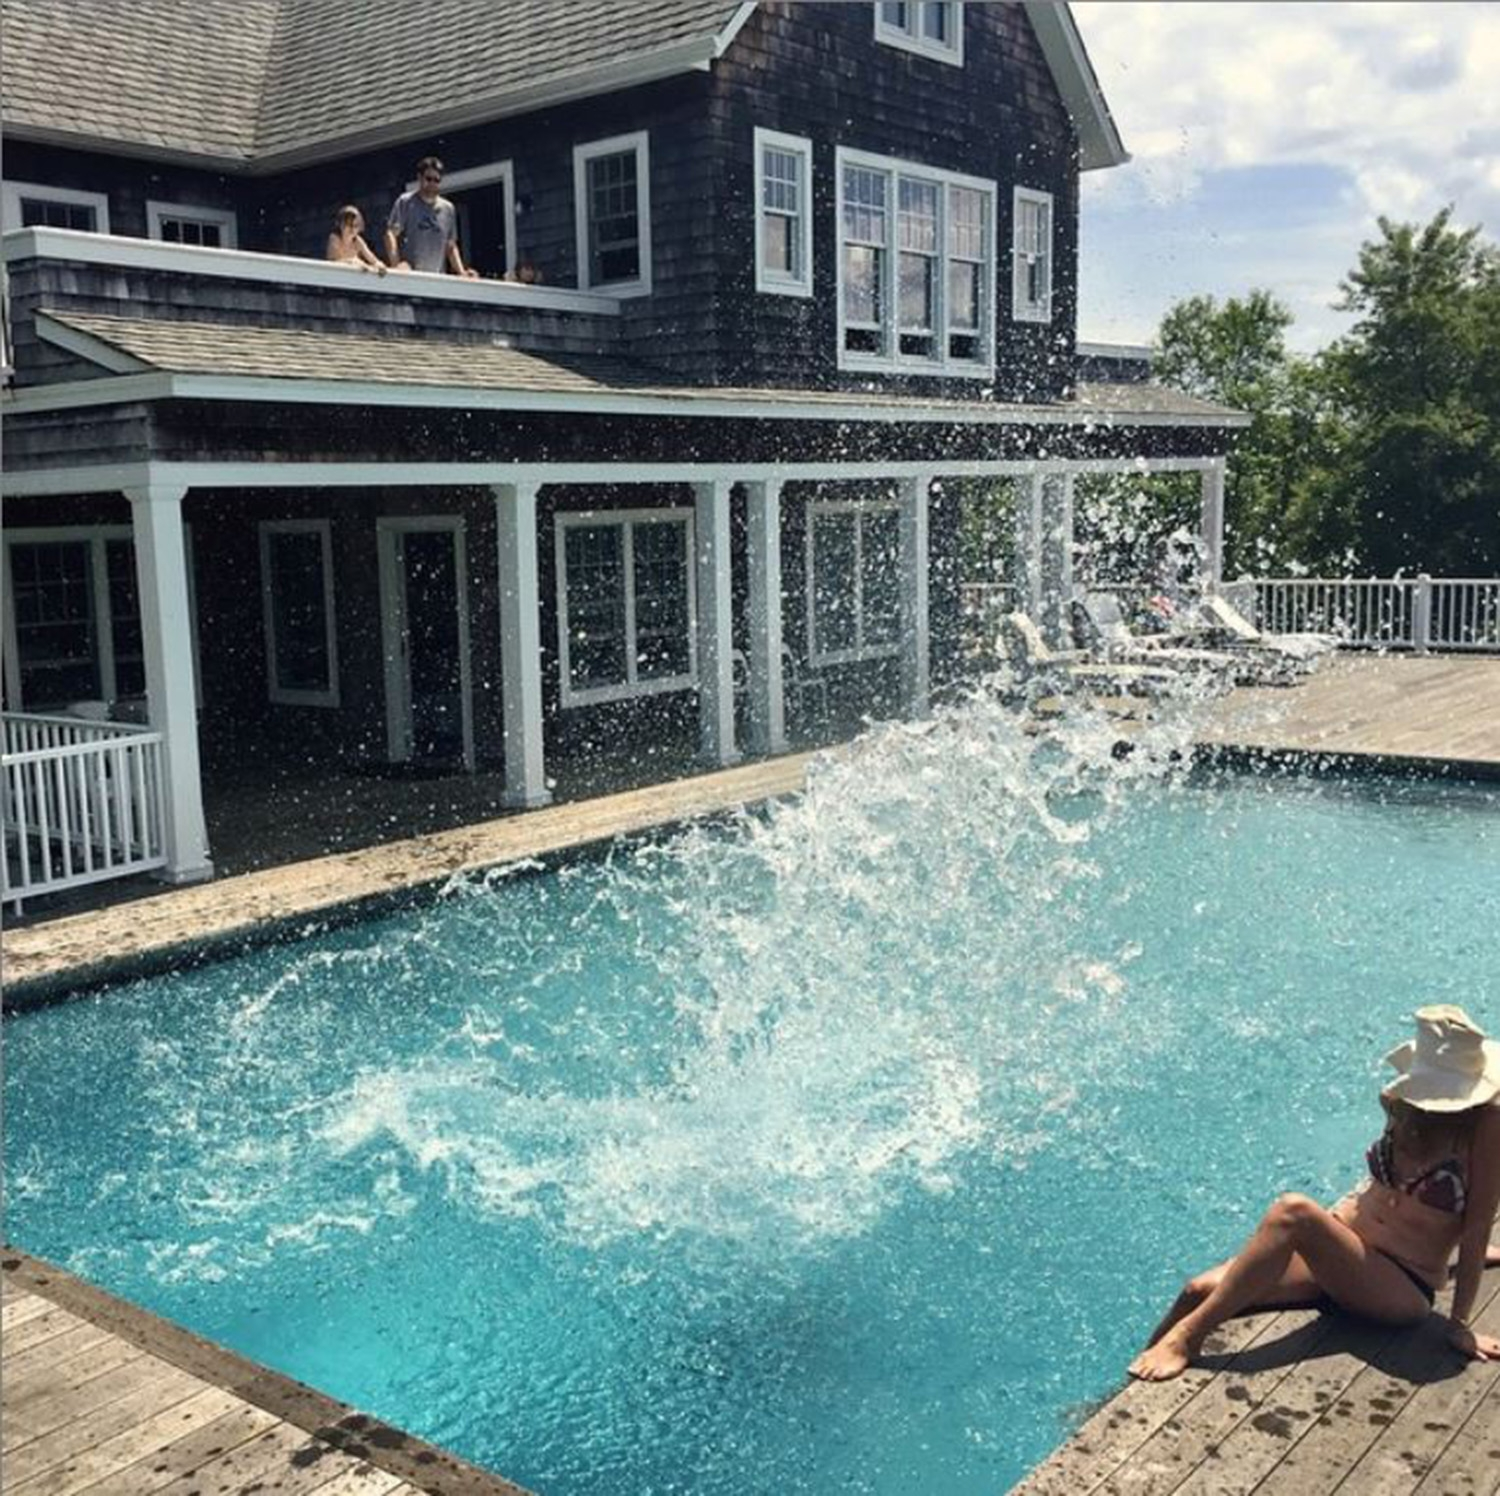 The splash of someone jumping into the pool next to a large shingle house